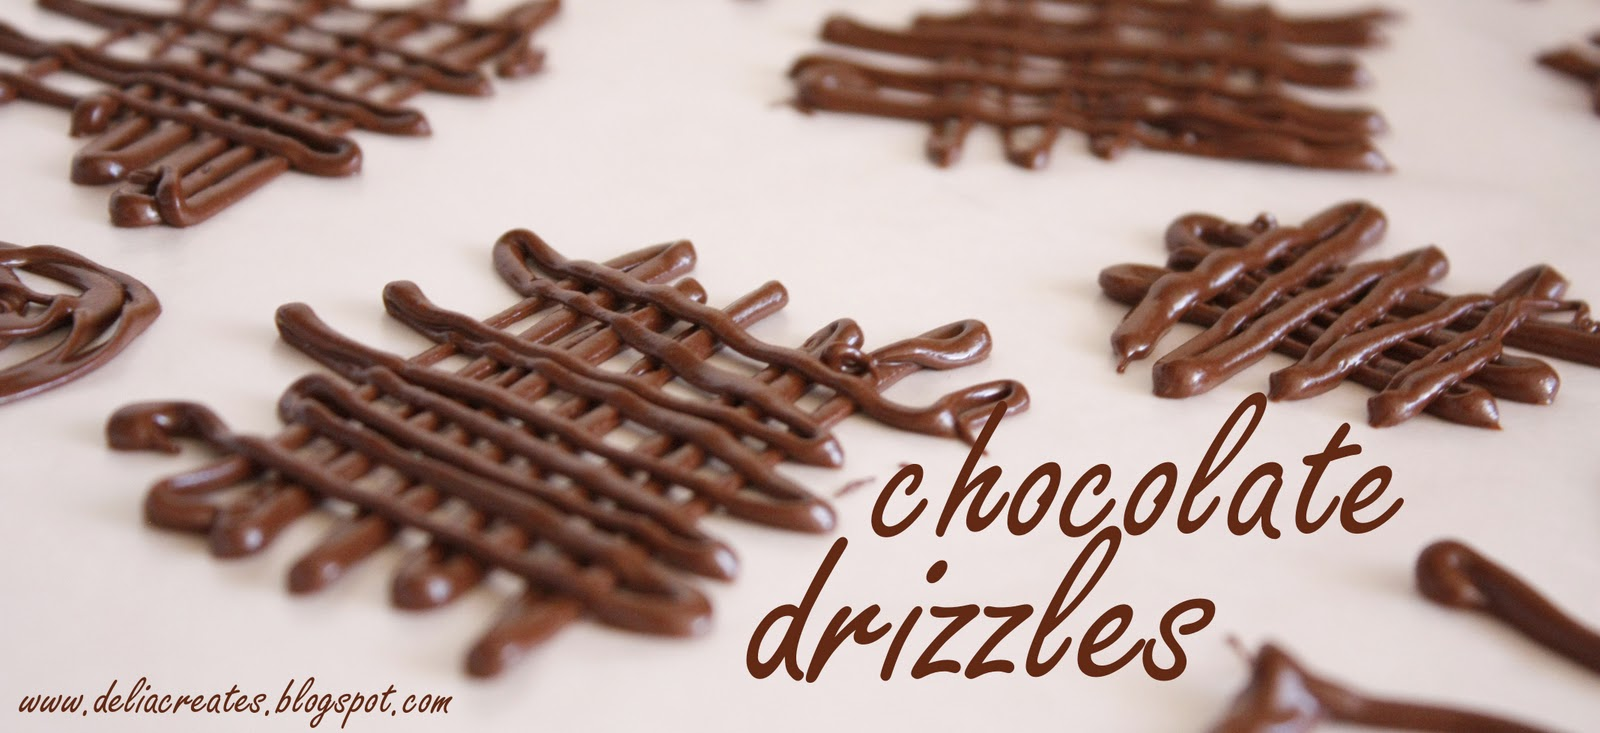 & Chocolate Drizzles